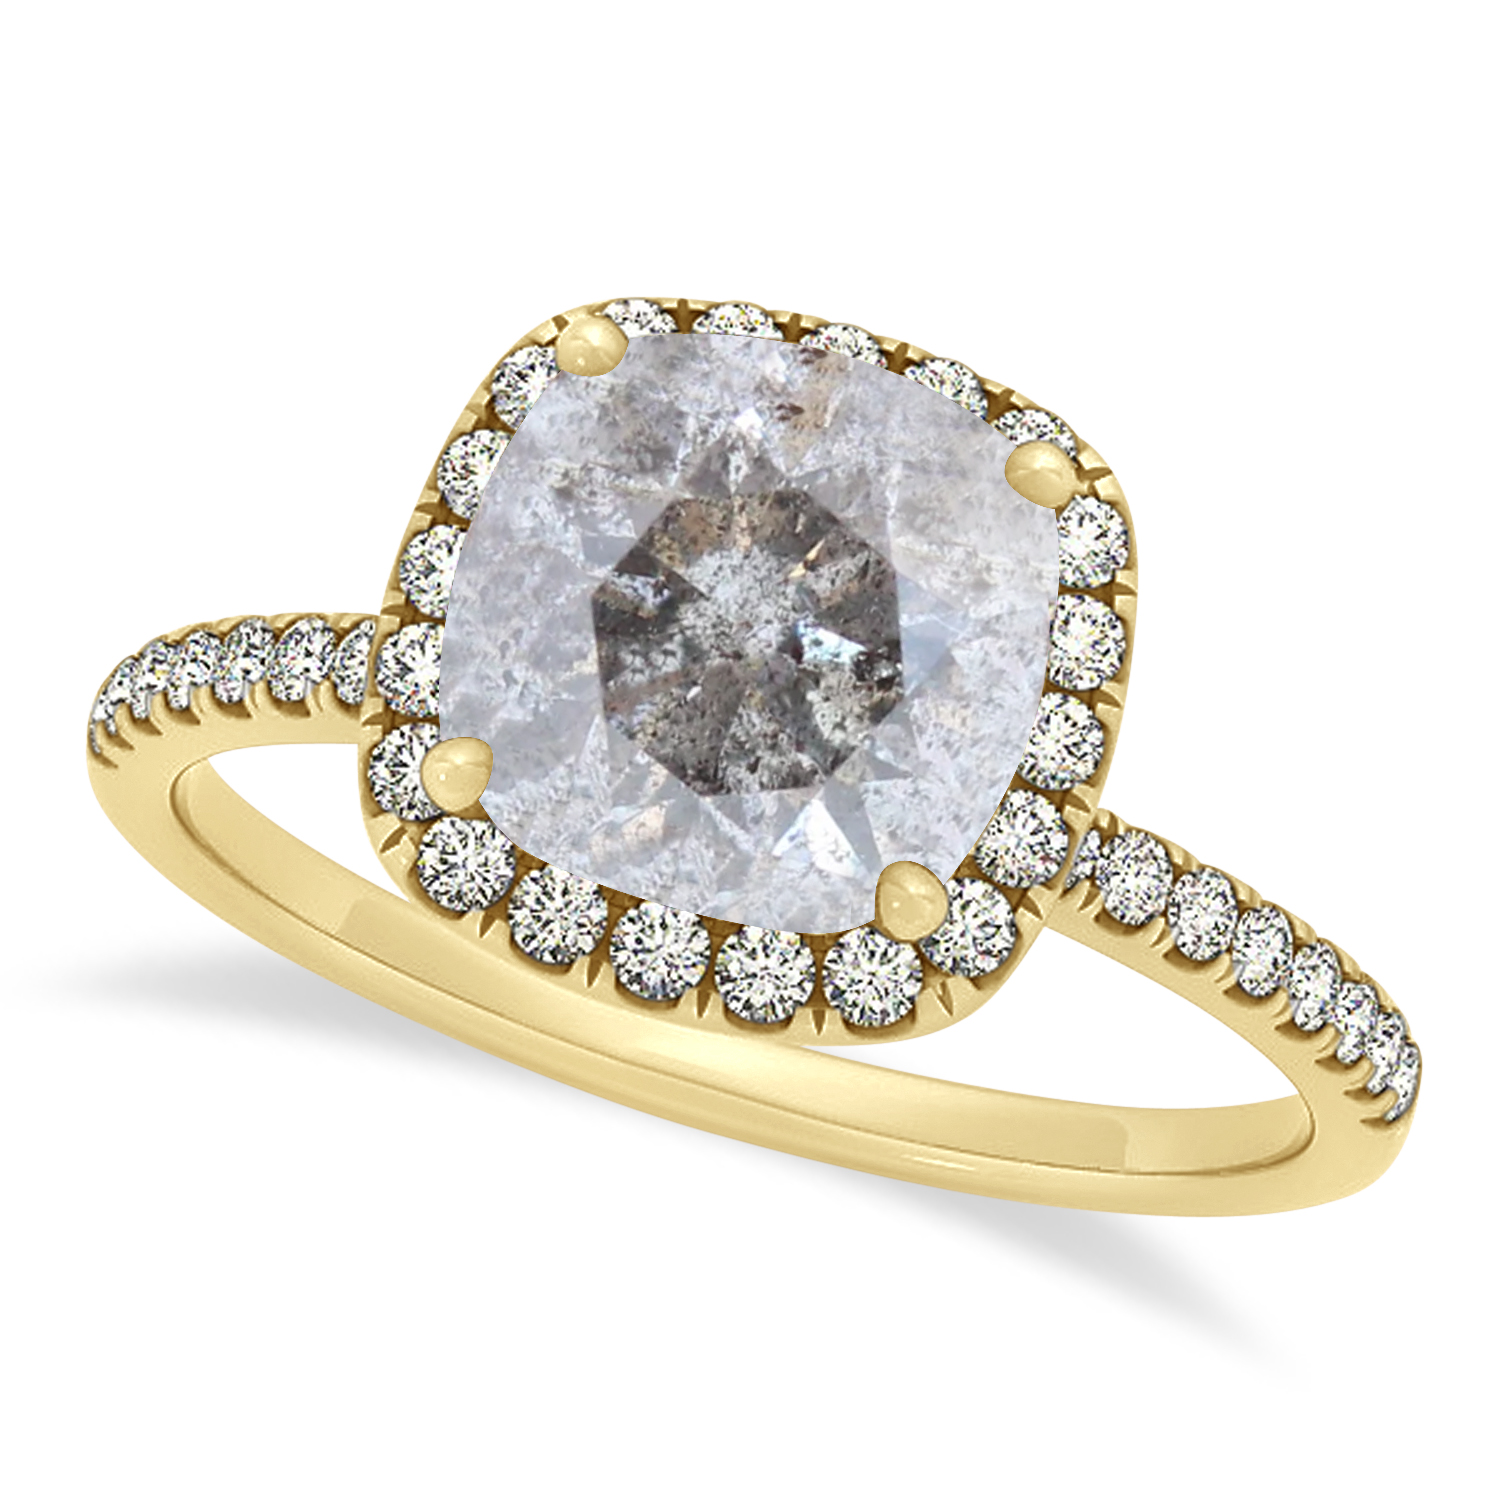 Cushion Salt & Pepper Diamond Halo Engagement Ring French Pave 14k Y. Gold 0.70ct